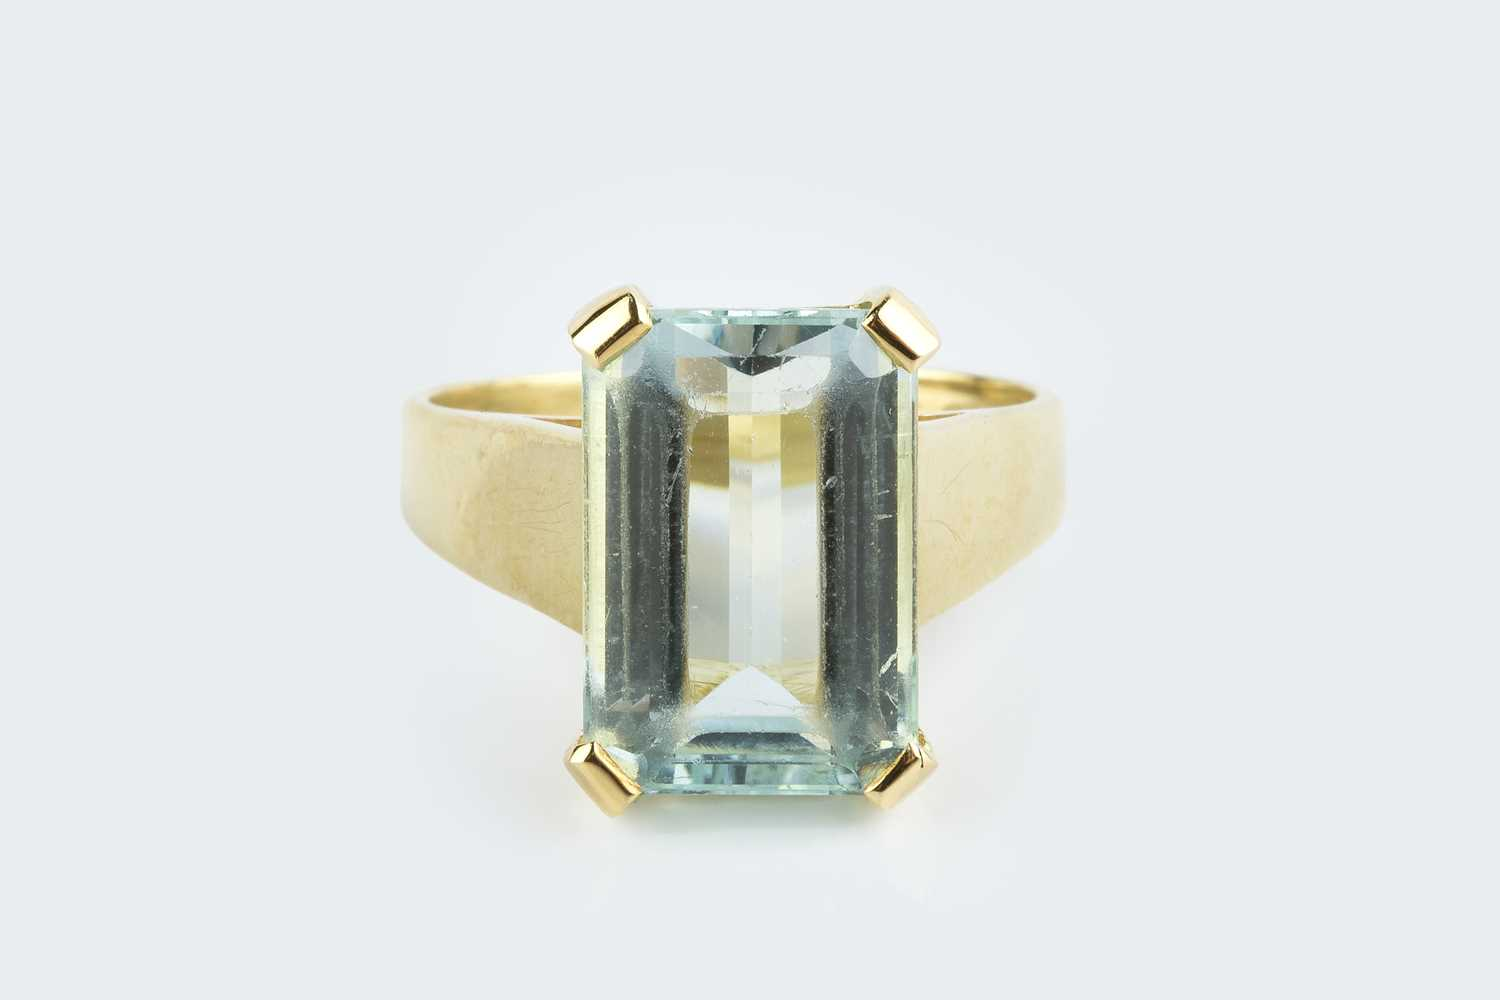 An aquamarine single stone ring, the rectangular step-cut aquamarine with canted corners, in four